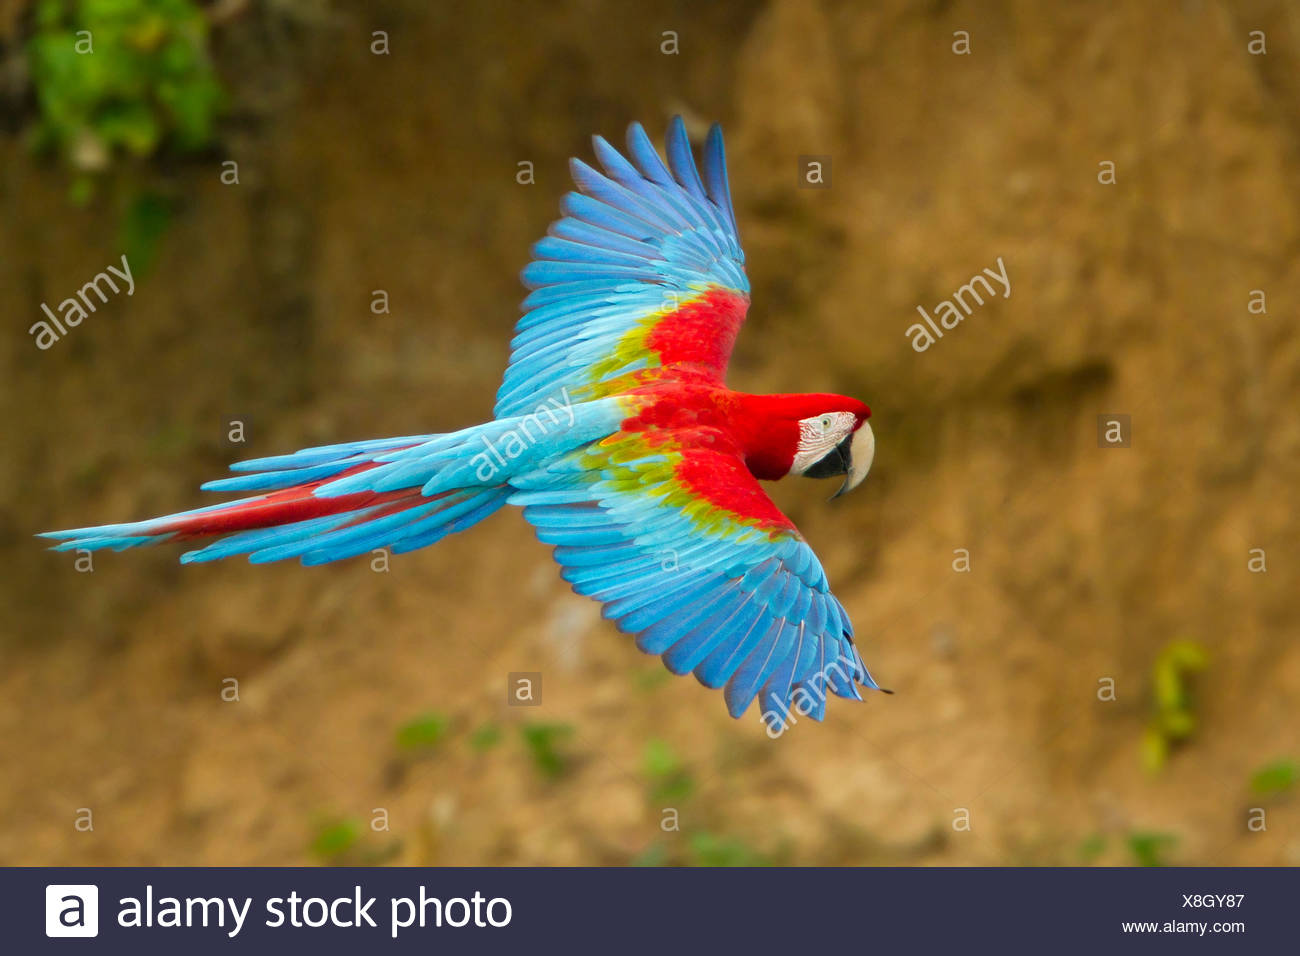 Red-and-green Macaw (Ara chloroptera) flying in Peru. - Stock Image